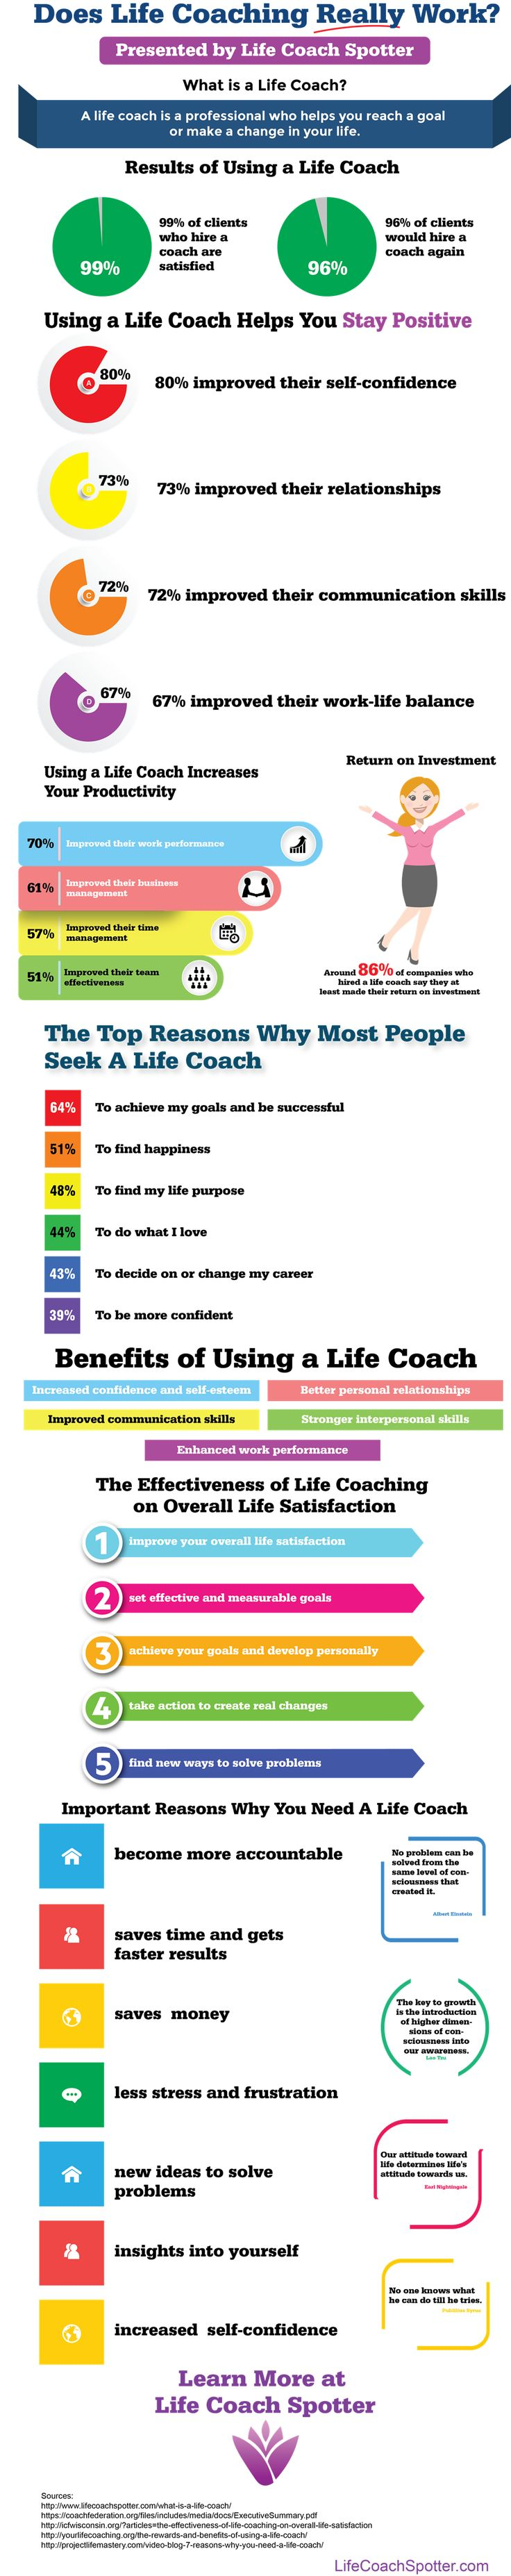 Does Life Coaching Really Work? Infographic - http://elearninginfographics.com/does-life-coaching-really-work-infographic/